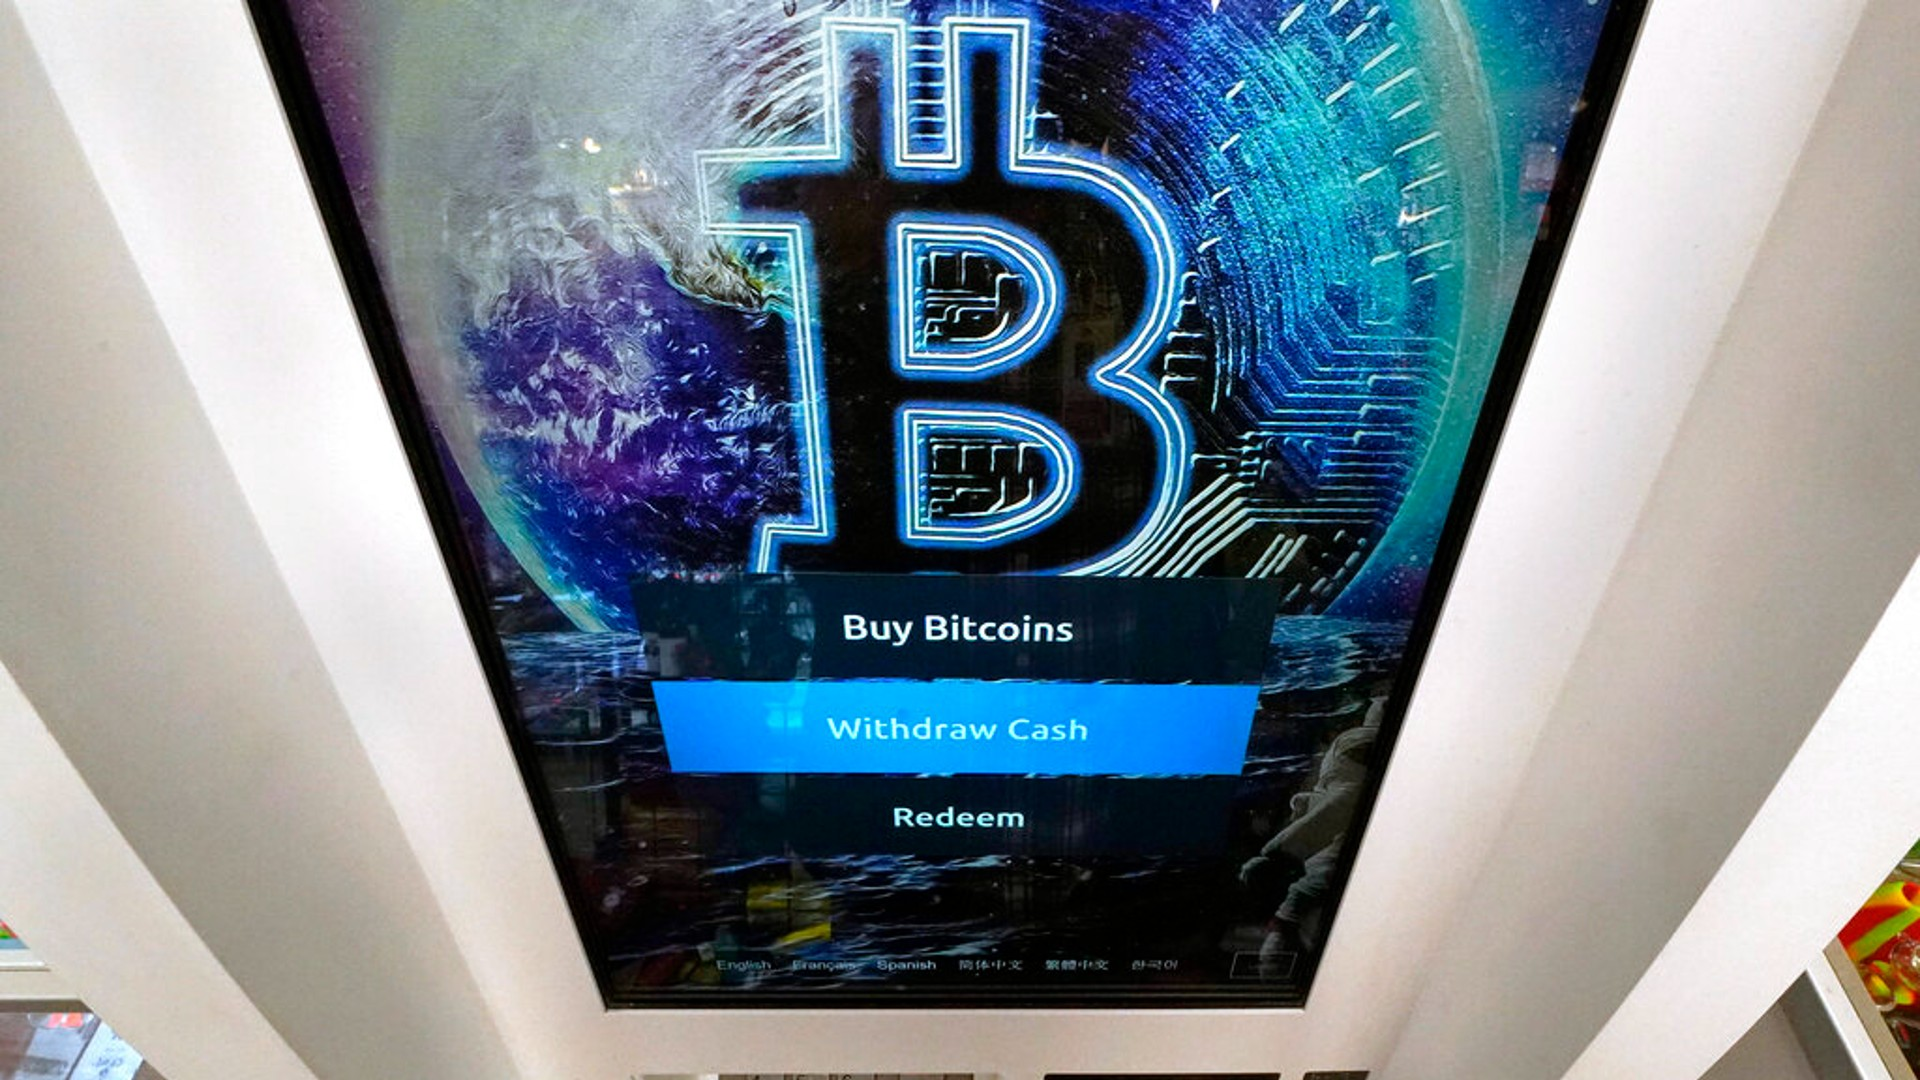 In this Feb. 9, 2021, file photo, the Bitcoin logo appears on the display screen of a cryptocurrency ATM at the Smoker's Choice store in Salem, N.H. (AP Photo/Charles Krupa, File)